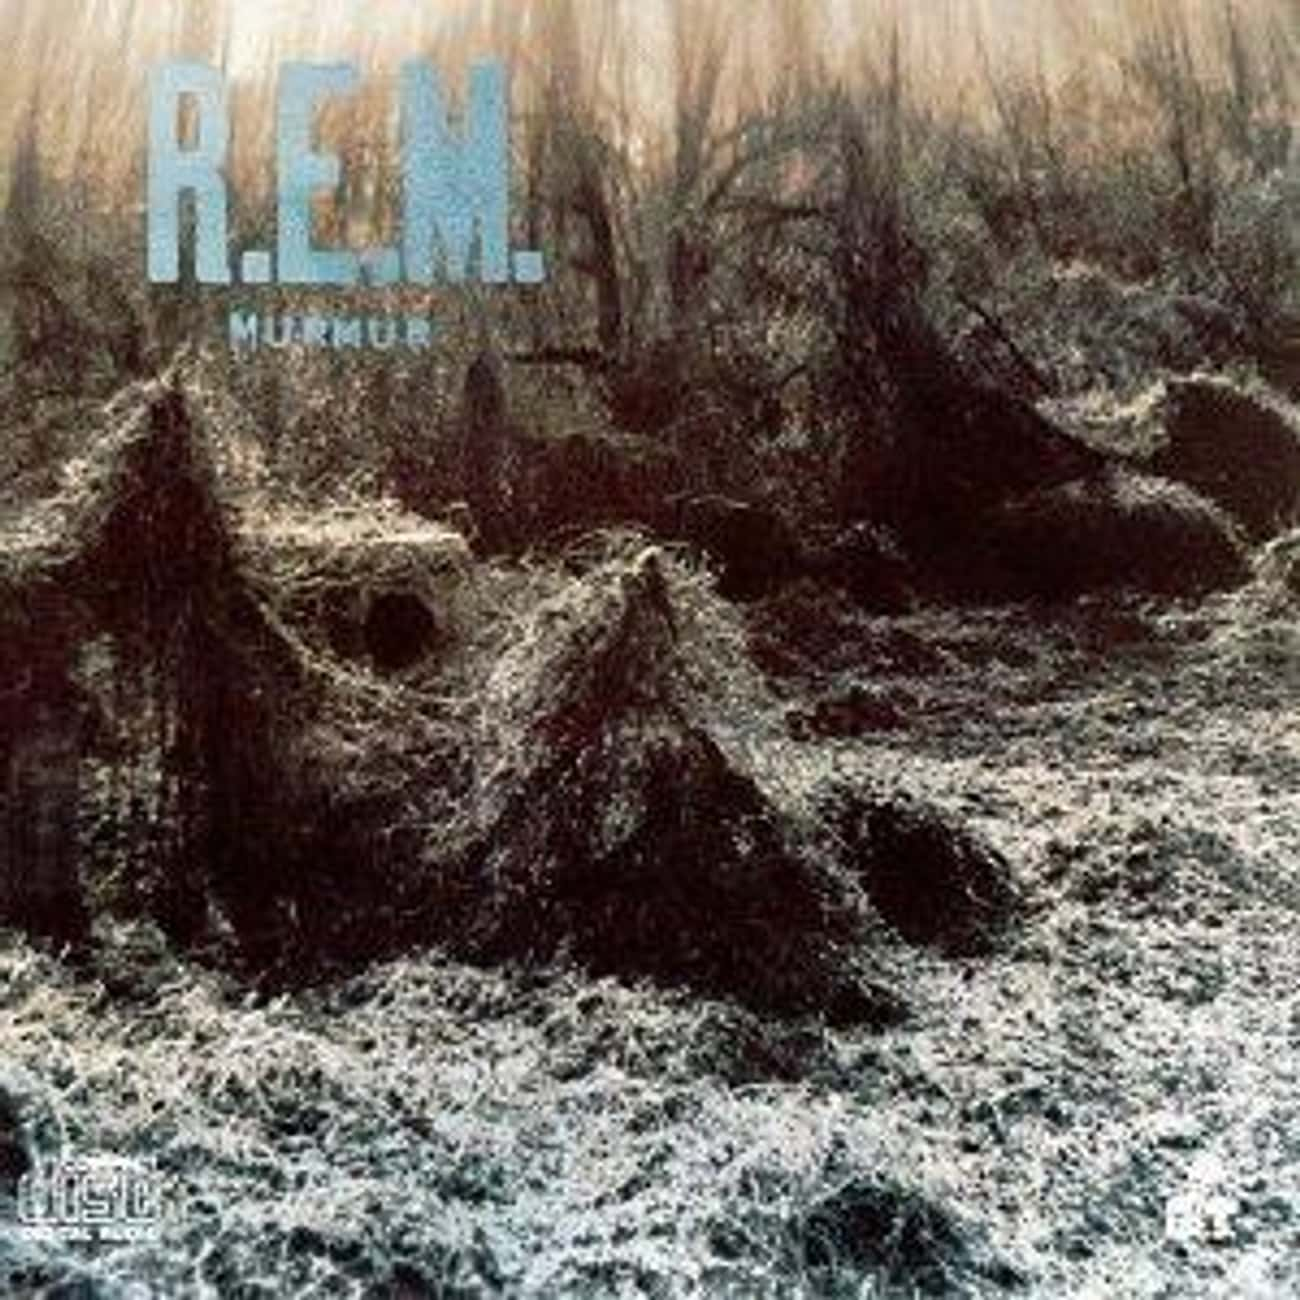 Murmur is listed (or ranked) 3 on the list The Best R.E.M. Albums of All Time